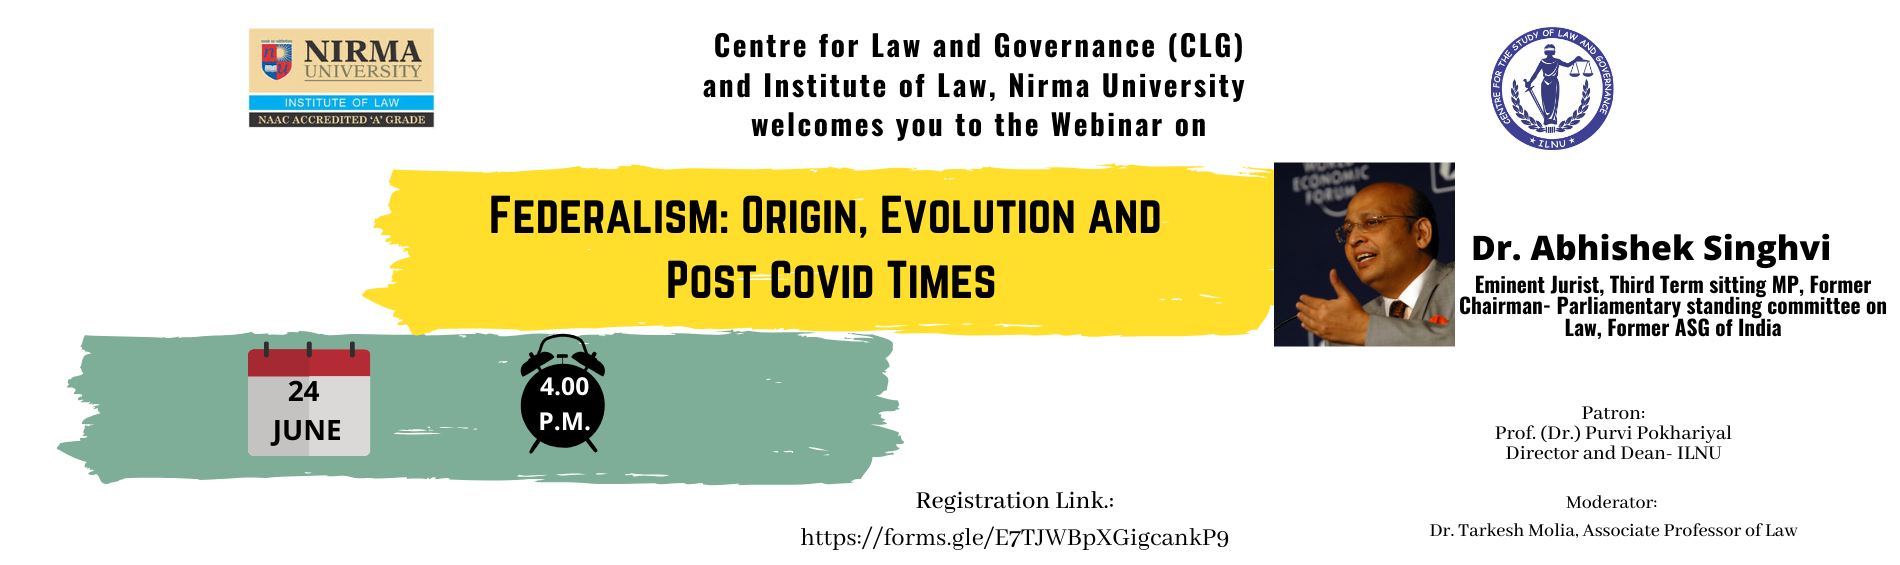 Webinar on Federalism by Centre for Study of Law and Governance & Nirmal University